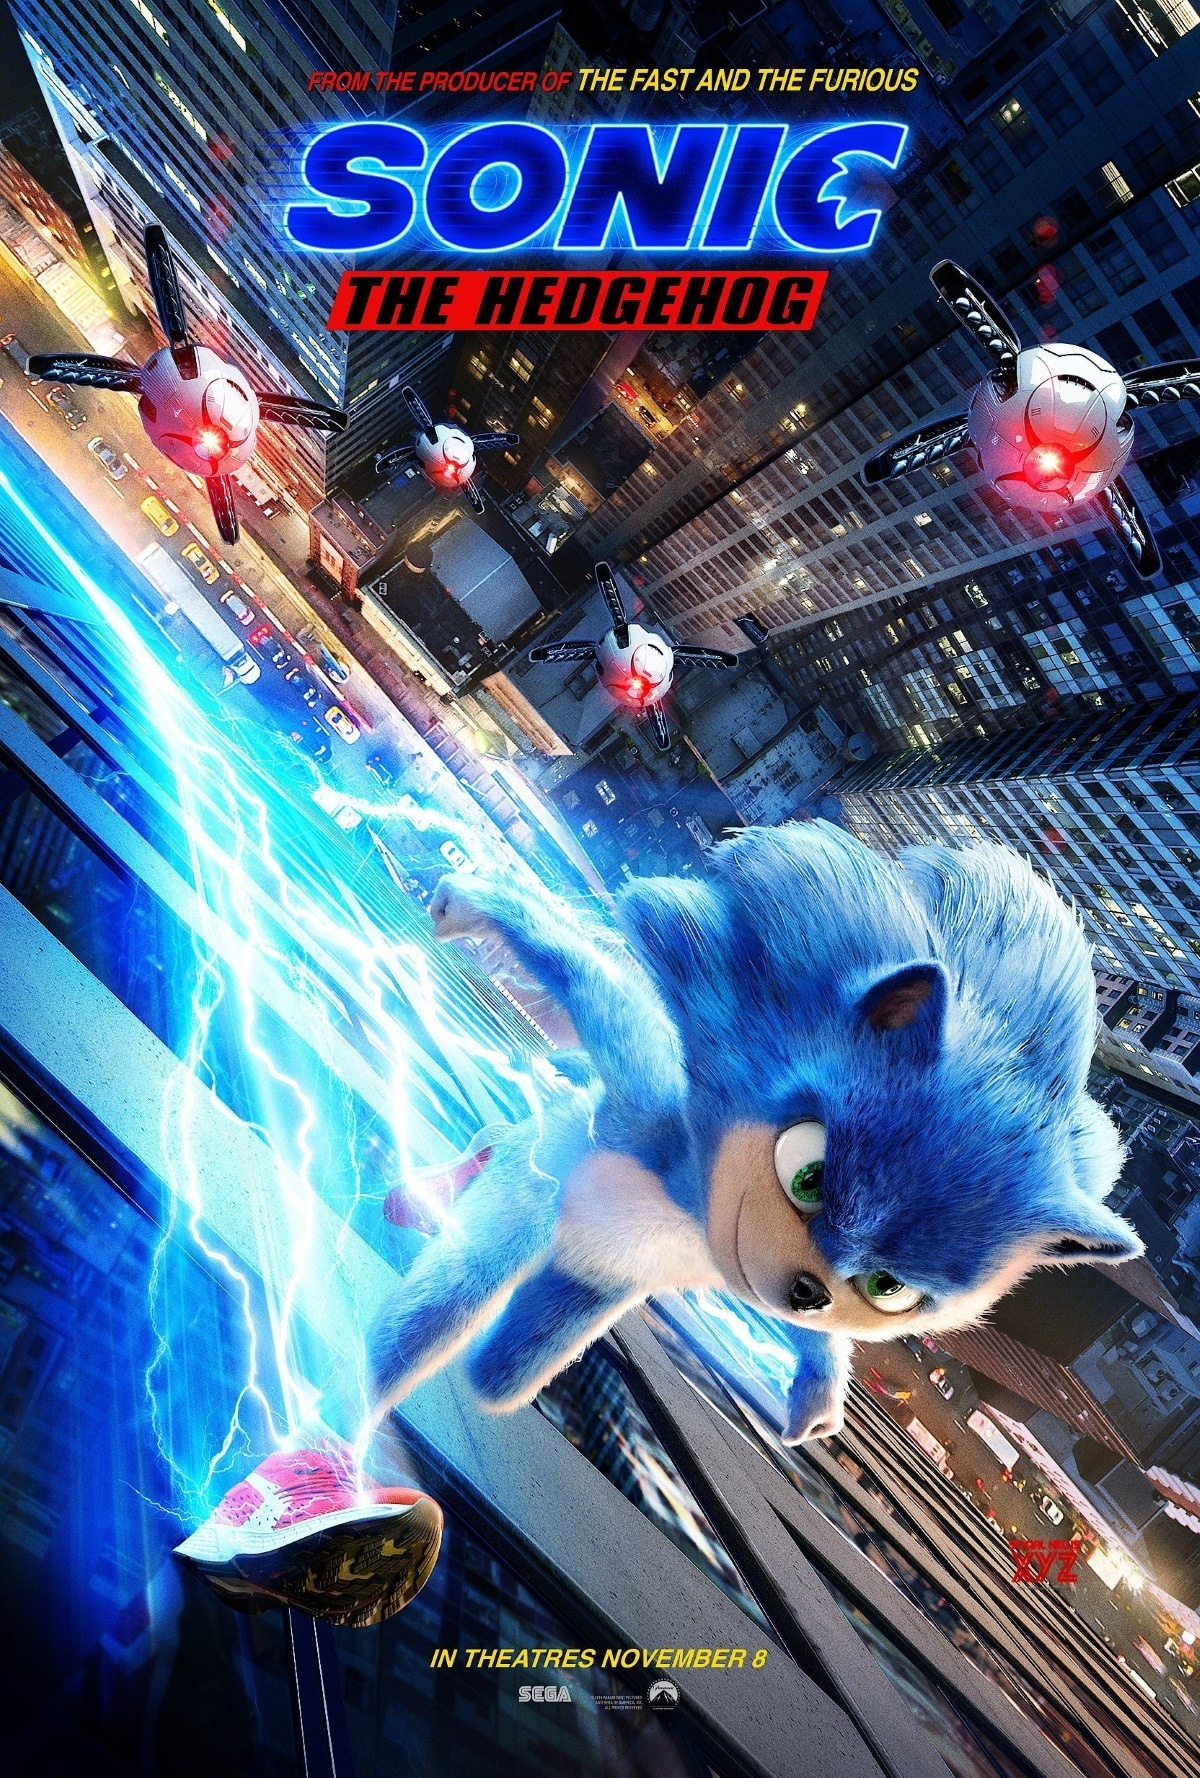 sonic the hedgehog movie HD Poster  Sonic the Hedgehog movie 2019 poster